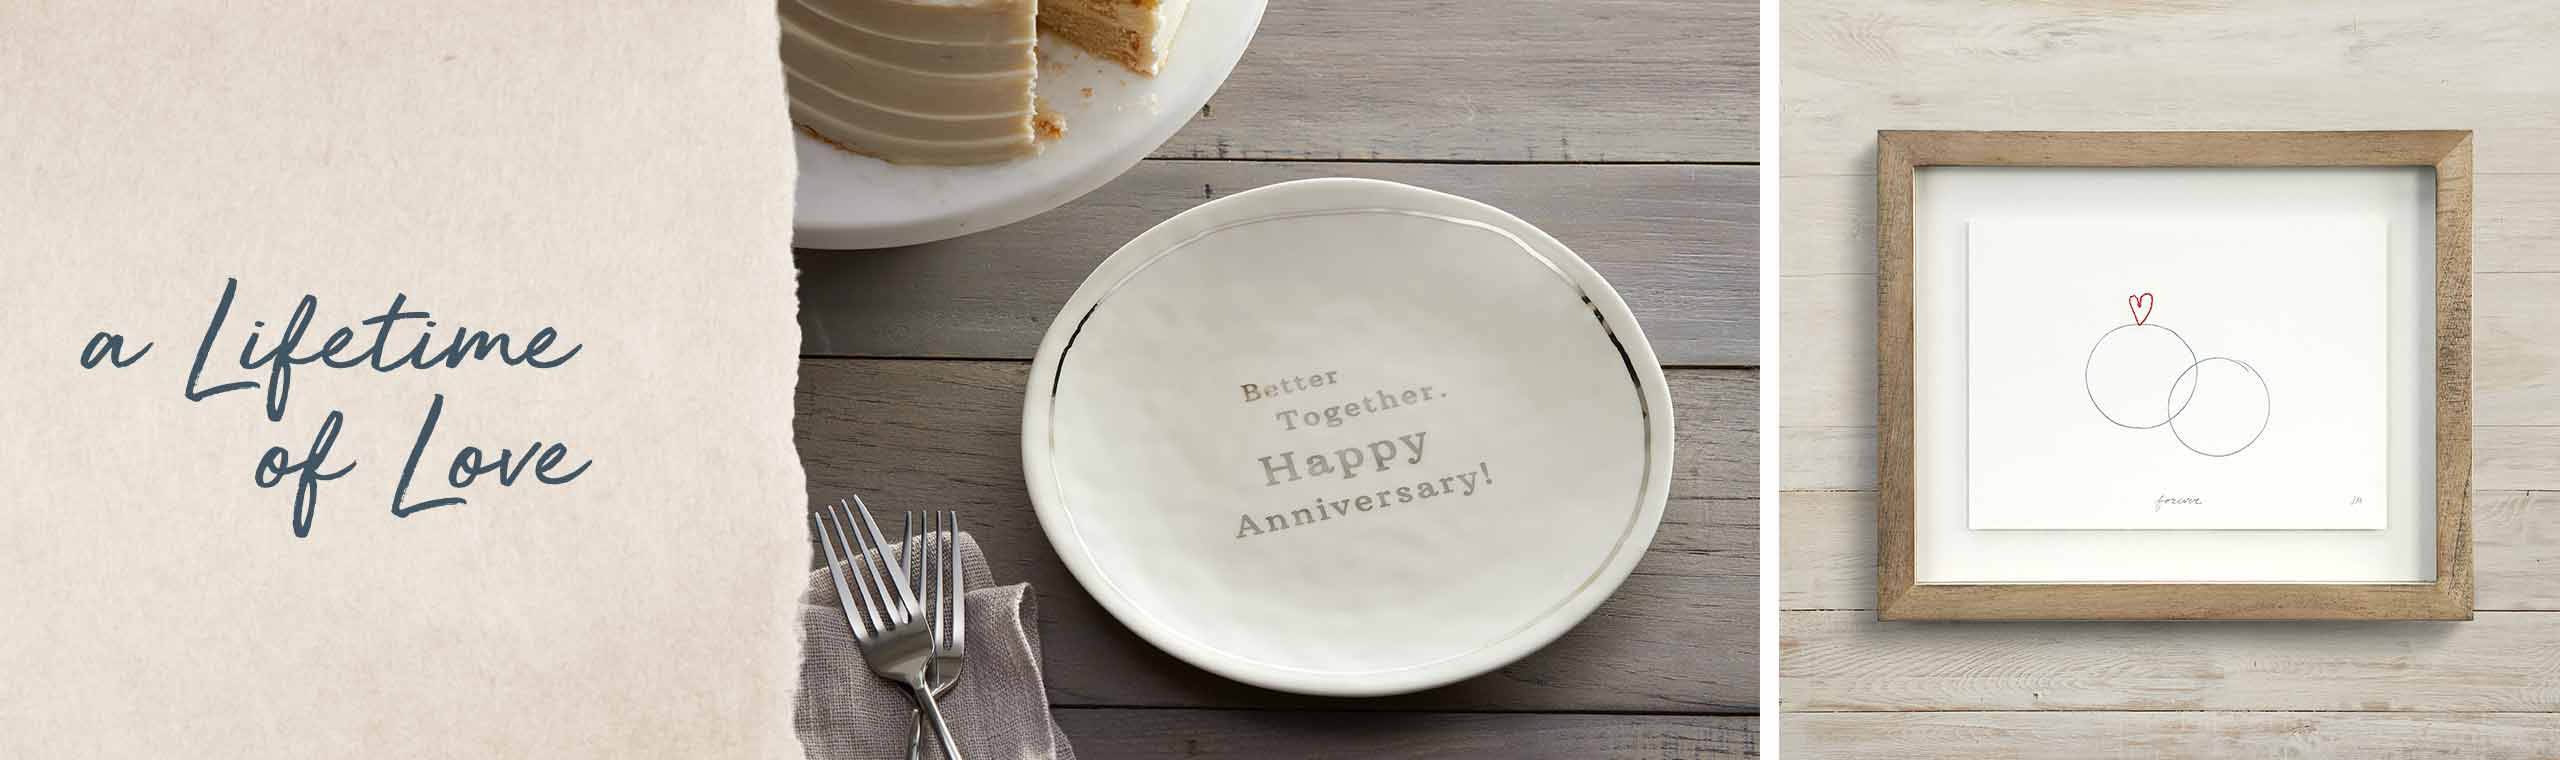 a Lifetime of Love. a ceramic plate celebrating 25th anniversary and a pictre frame with an illustration of two rings